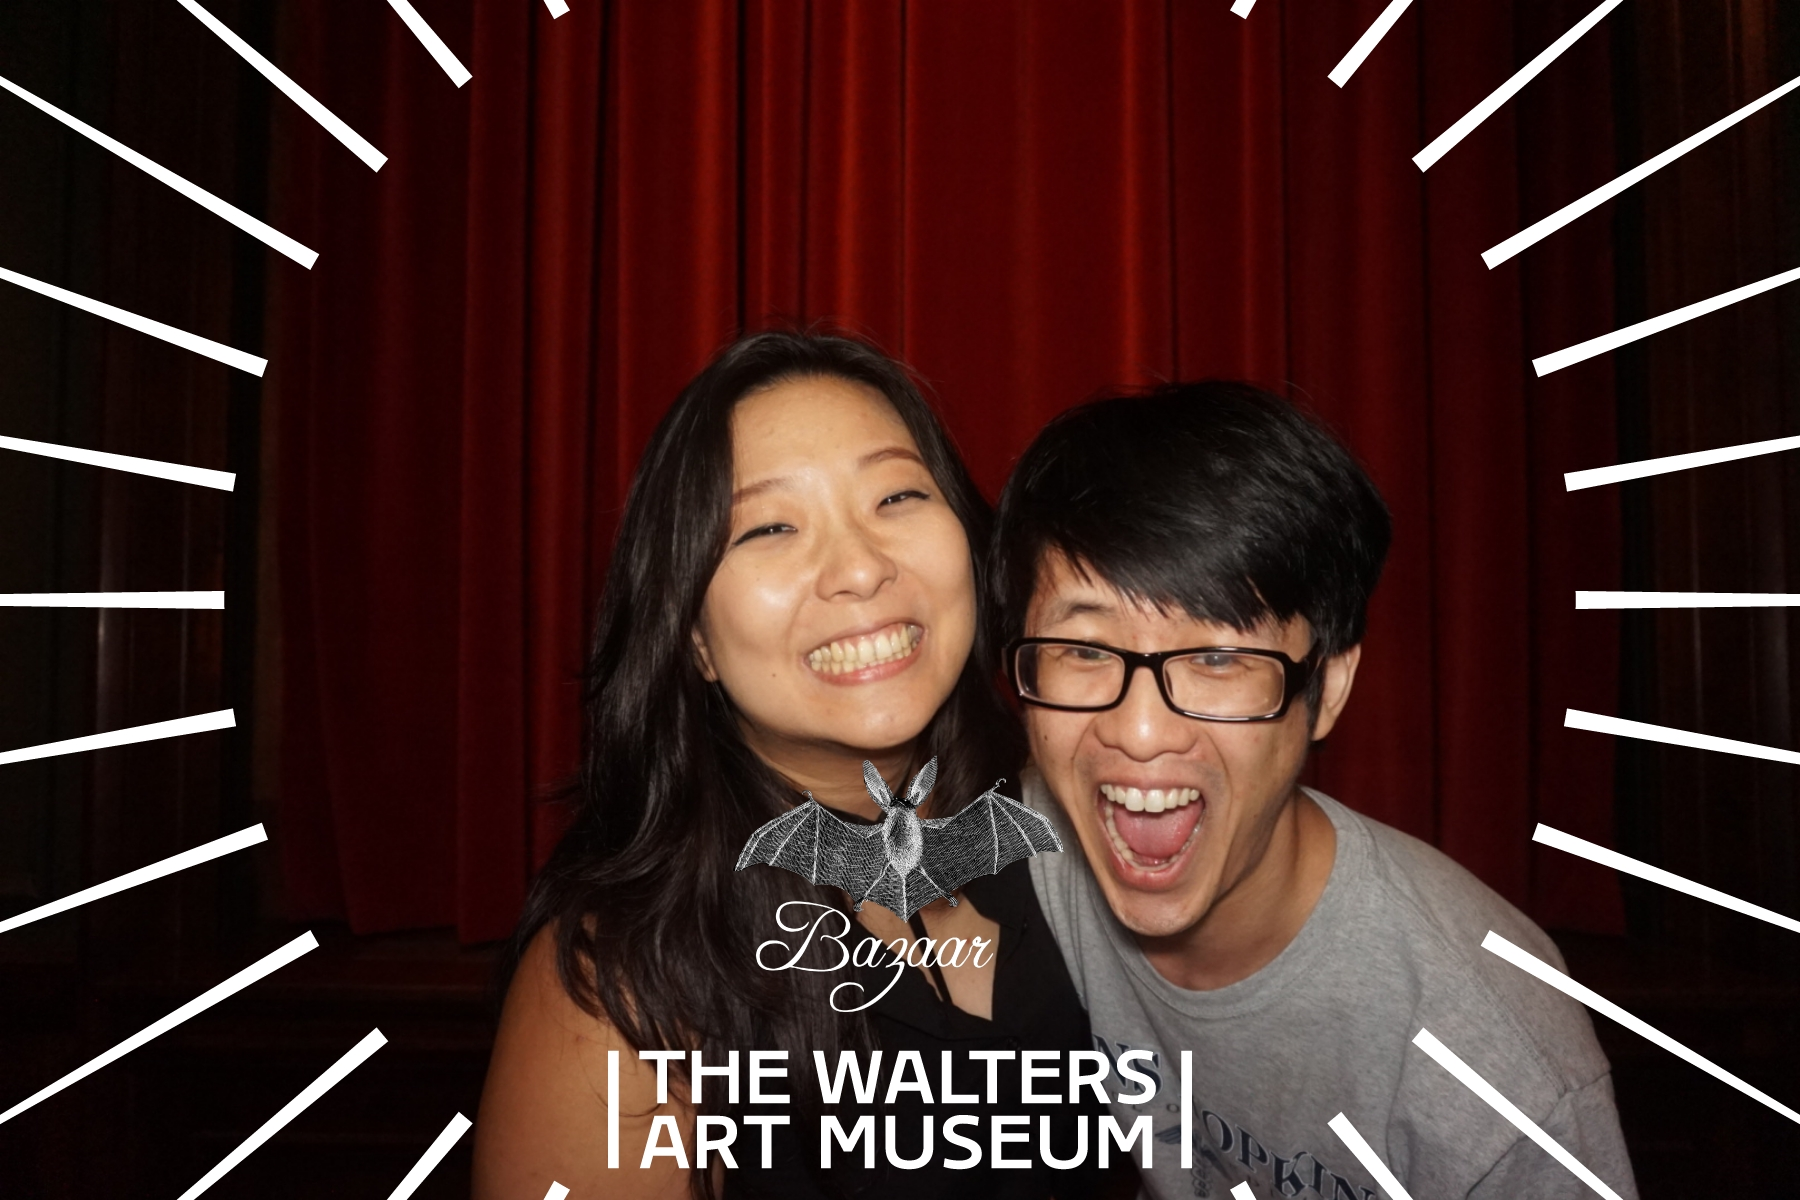 Walters Art Museum Photo Booth